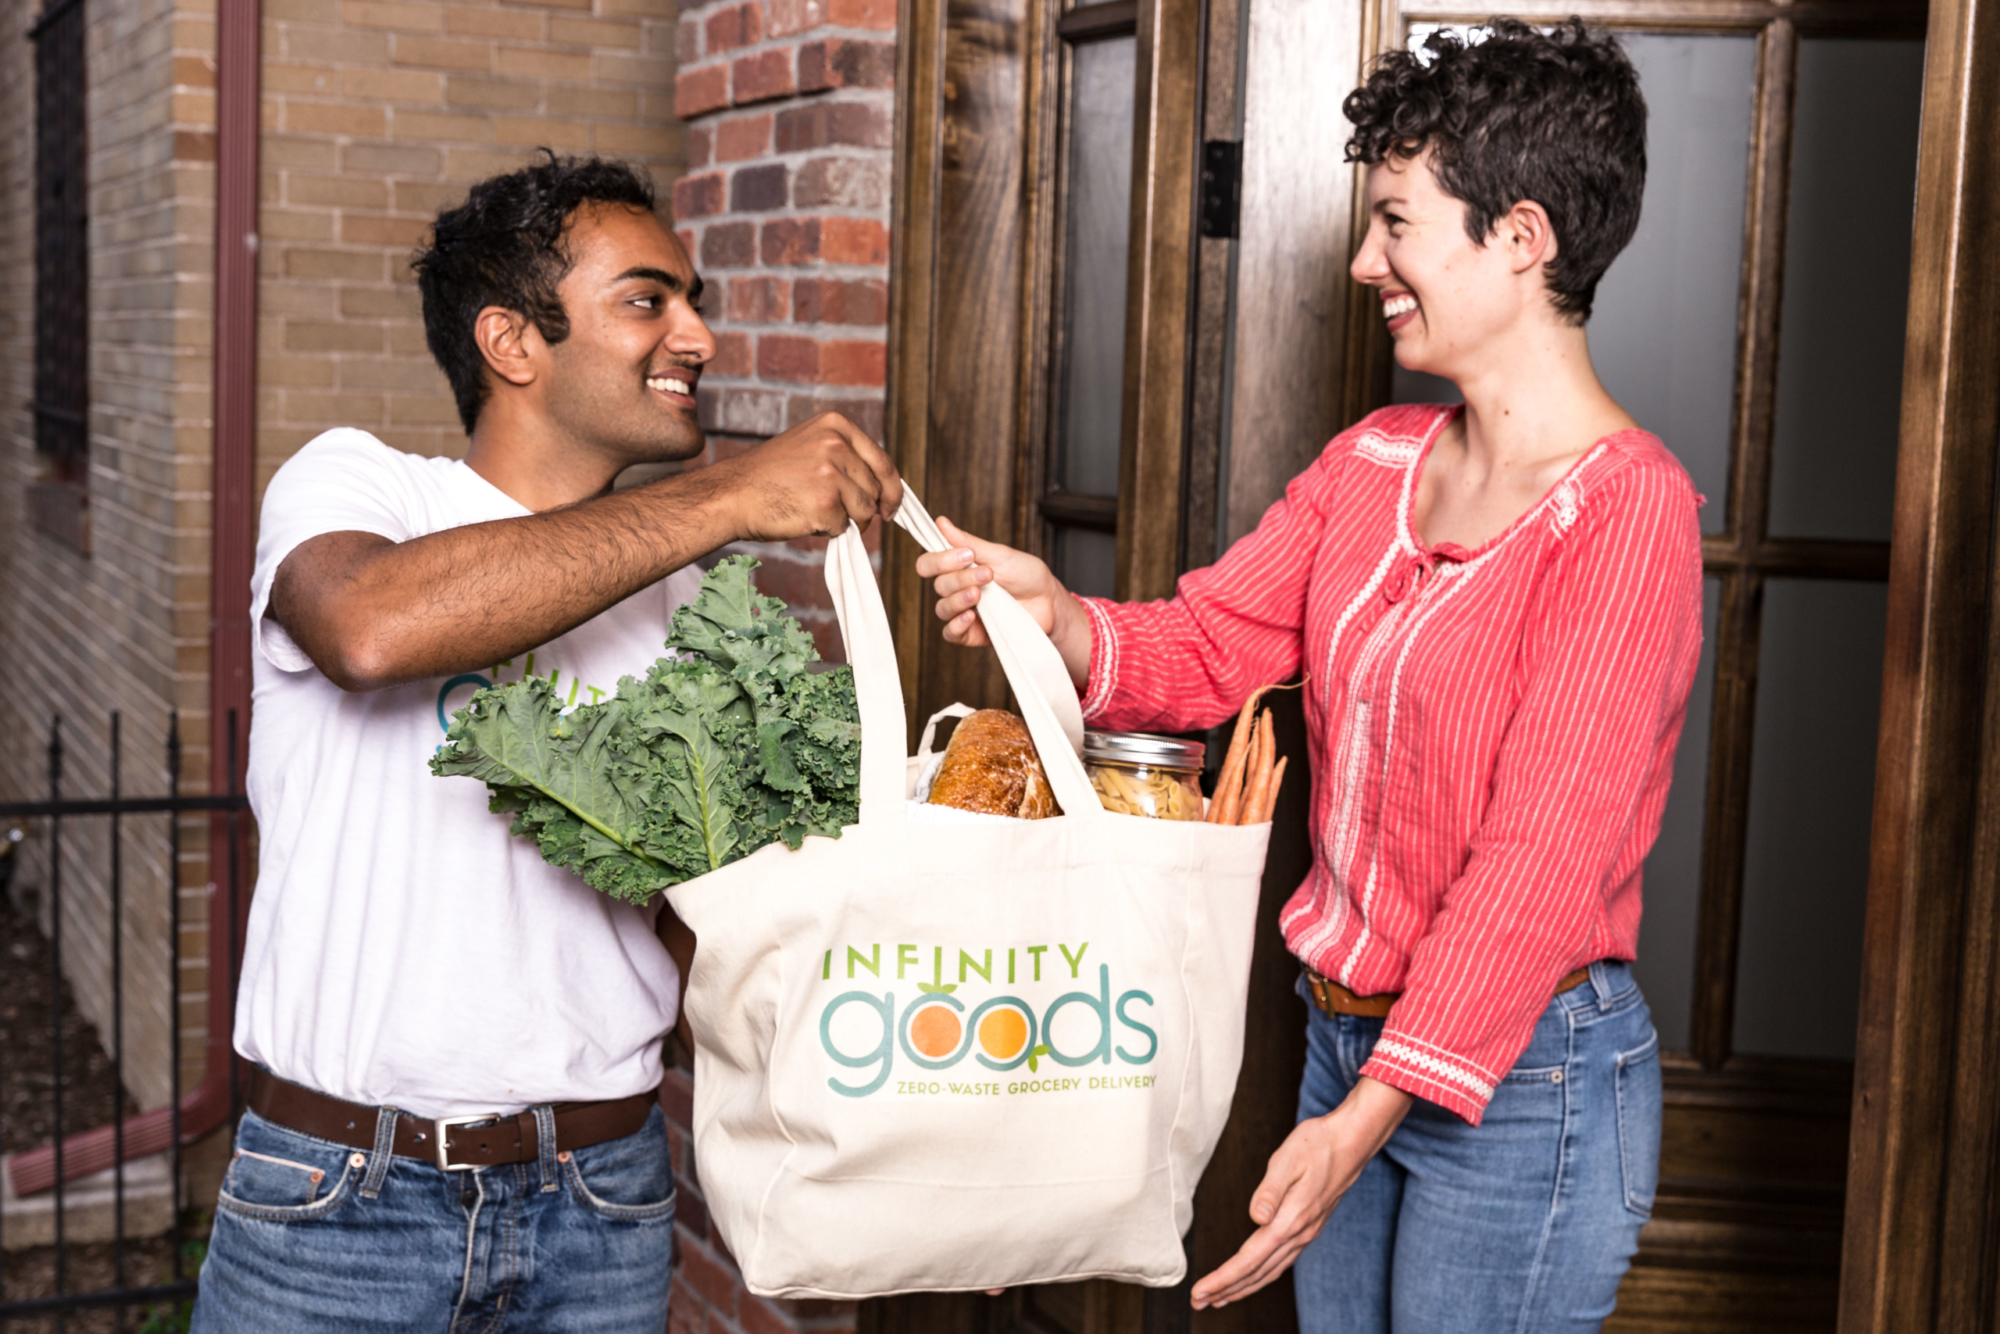 Smiling man hands woman bag of goods from Infinity Goods